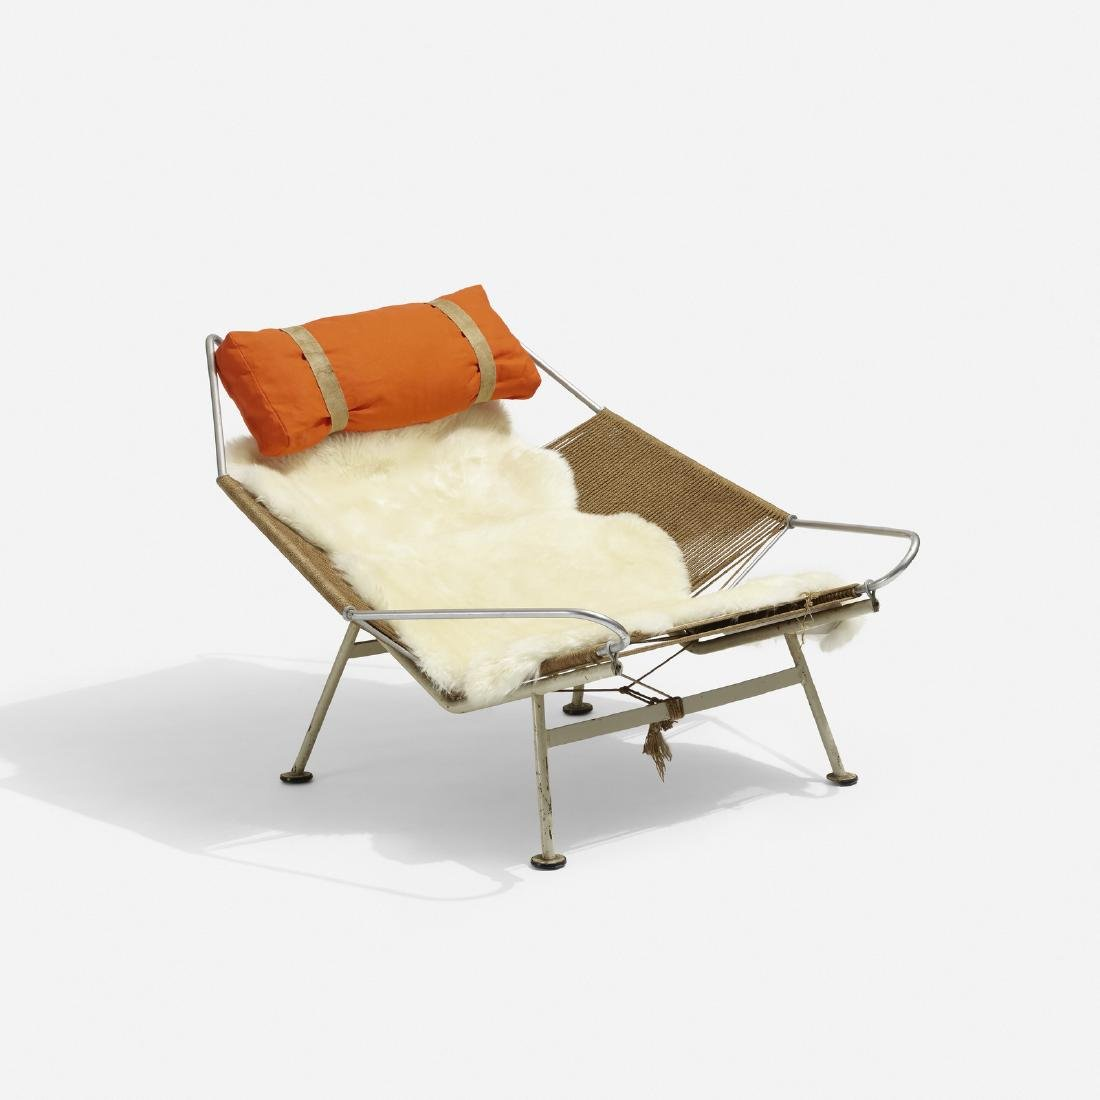 Hans J. Wegner, Flag Halyard lounge chair - 2